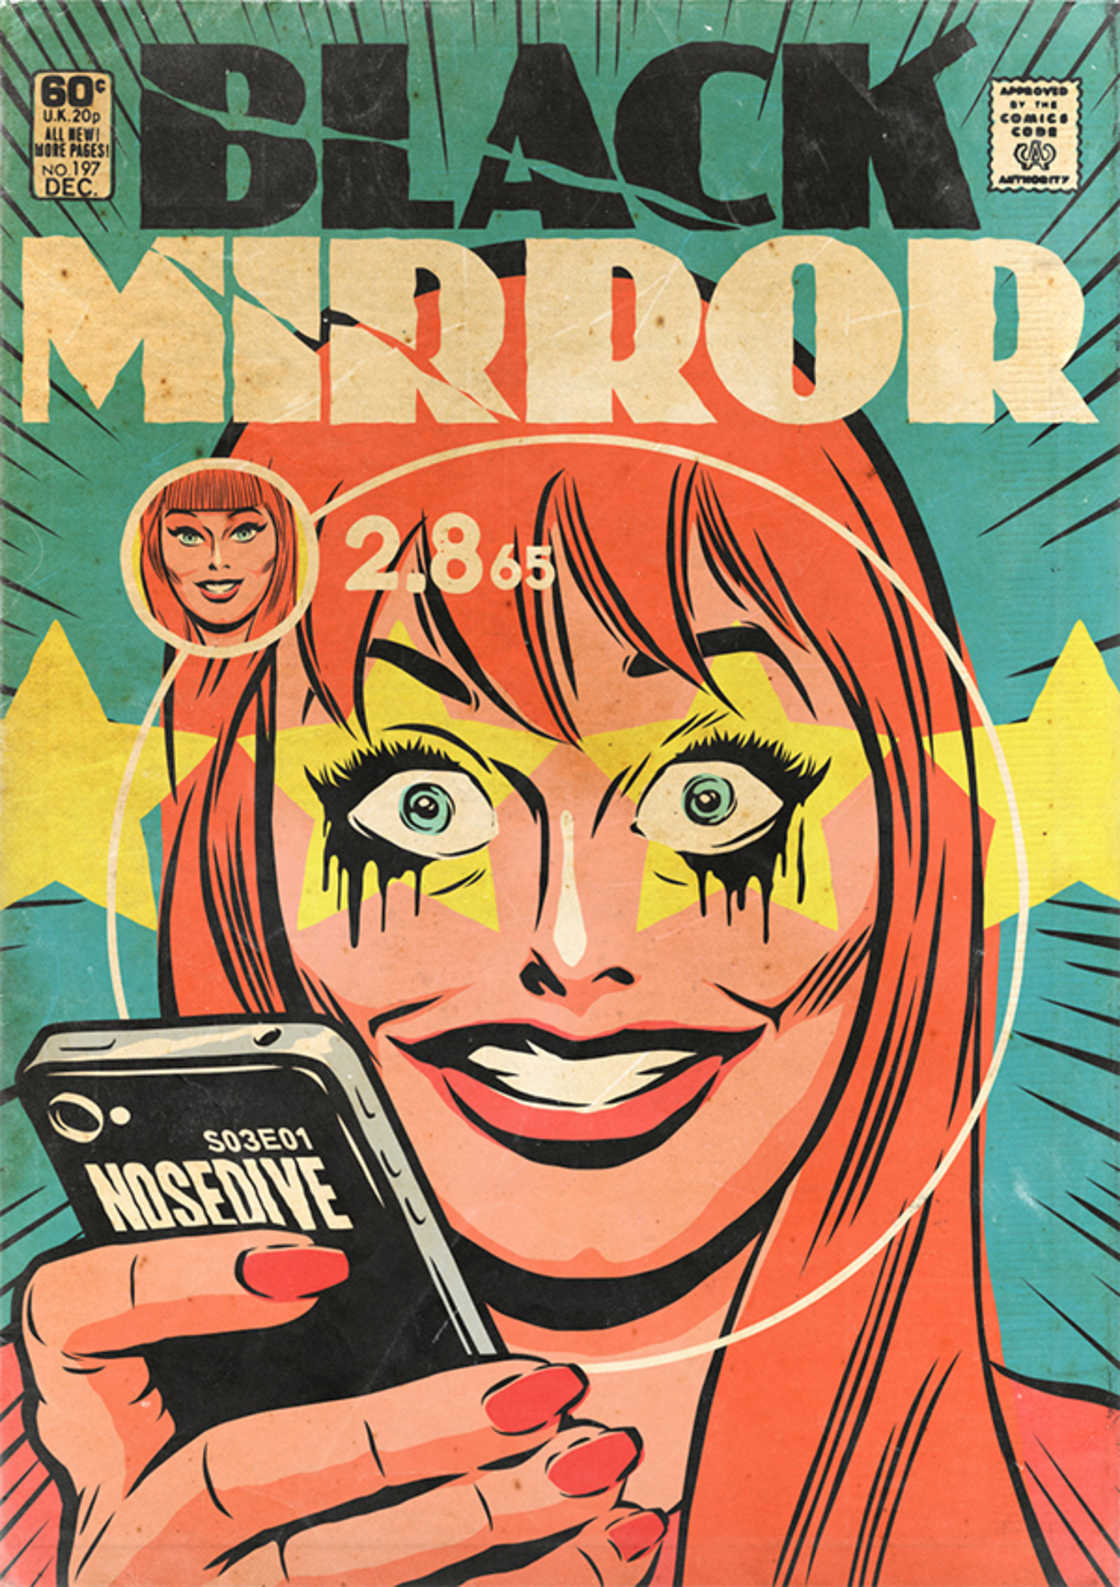 Black Mirror - Transformer les episodes en comics americains vintage